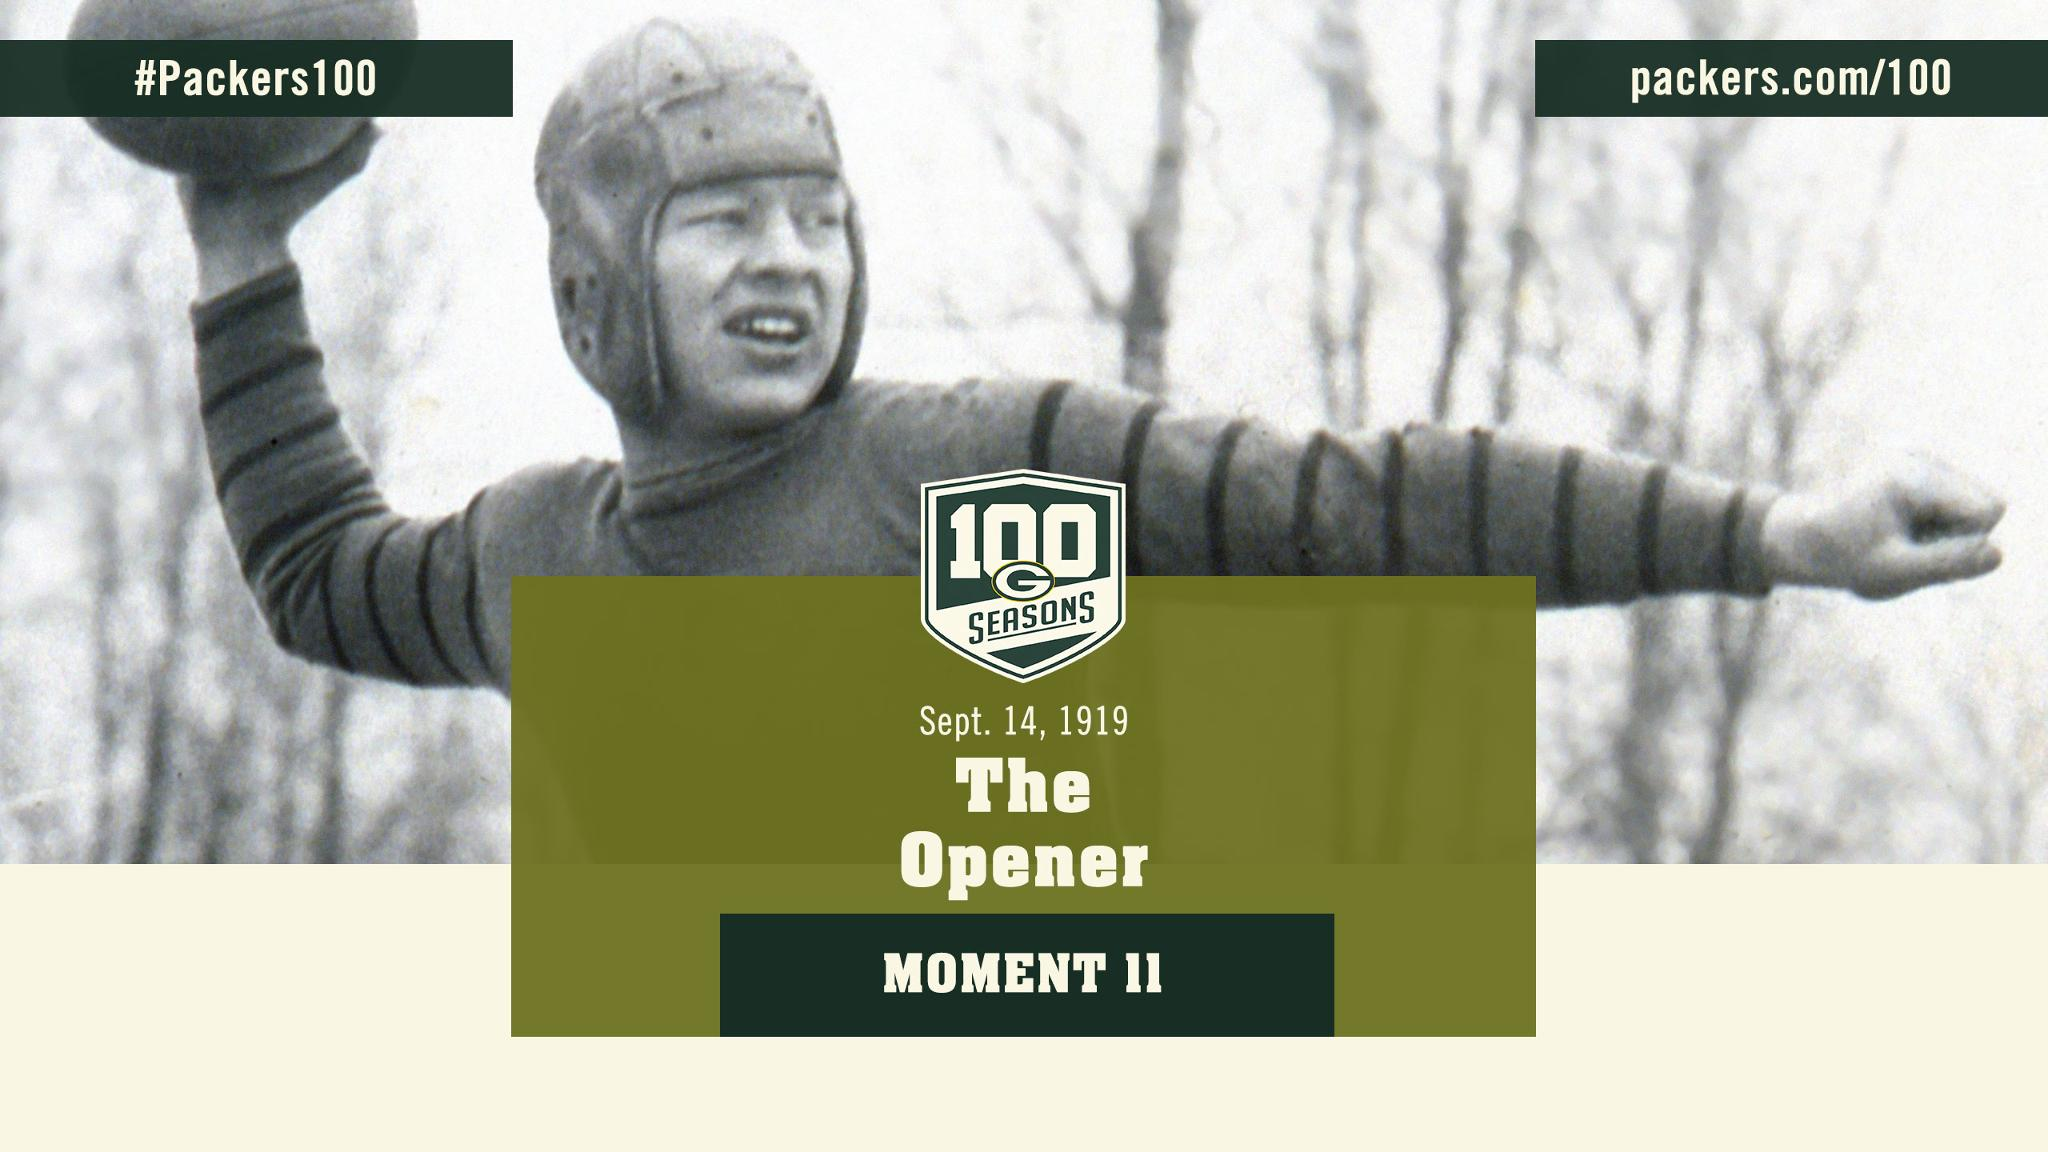 Sept. 14, 1919: The first game in #Packers history  ��: https://t.co/KTAYtNg2WP   #Packers100 https://t.co/rADJLykTgZ